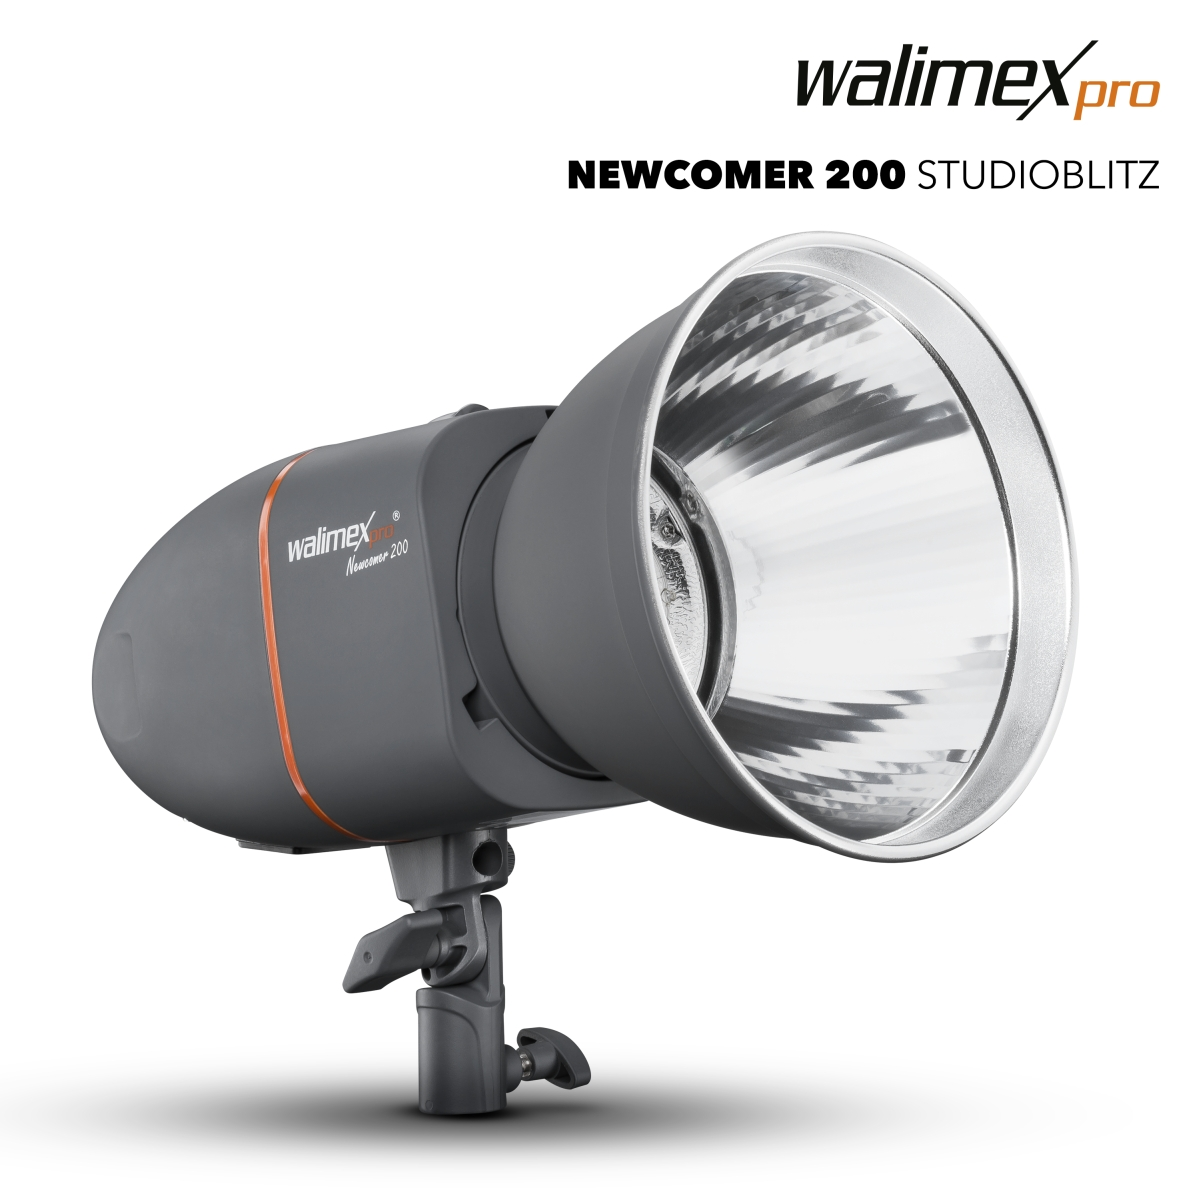 Walimex pro Newcomer 200 studio flash